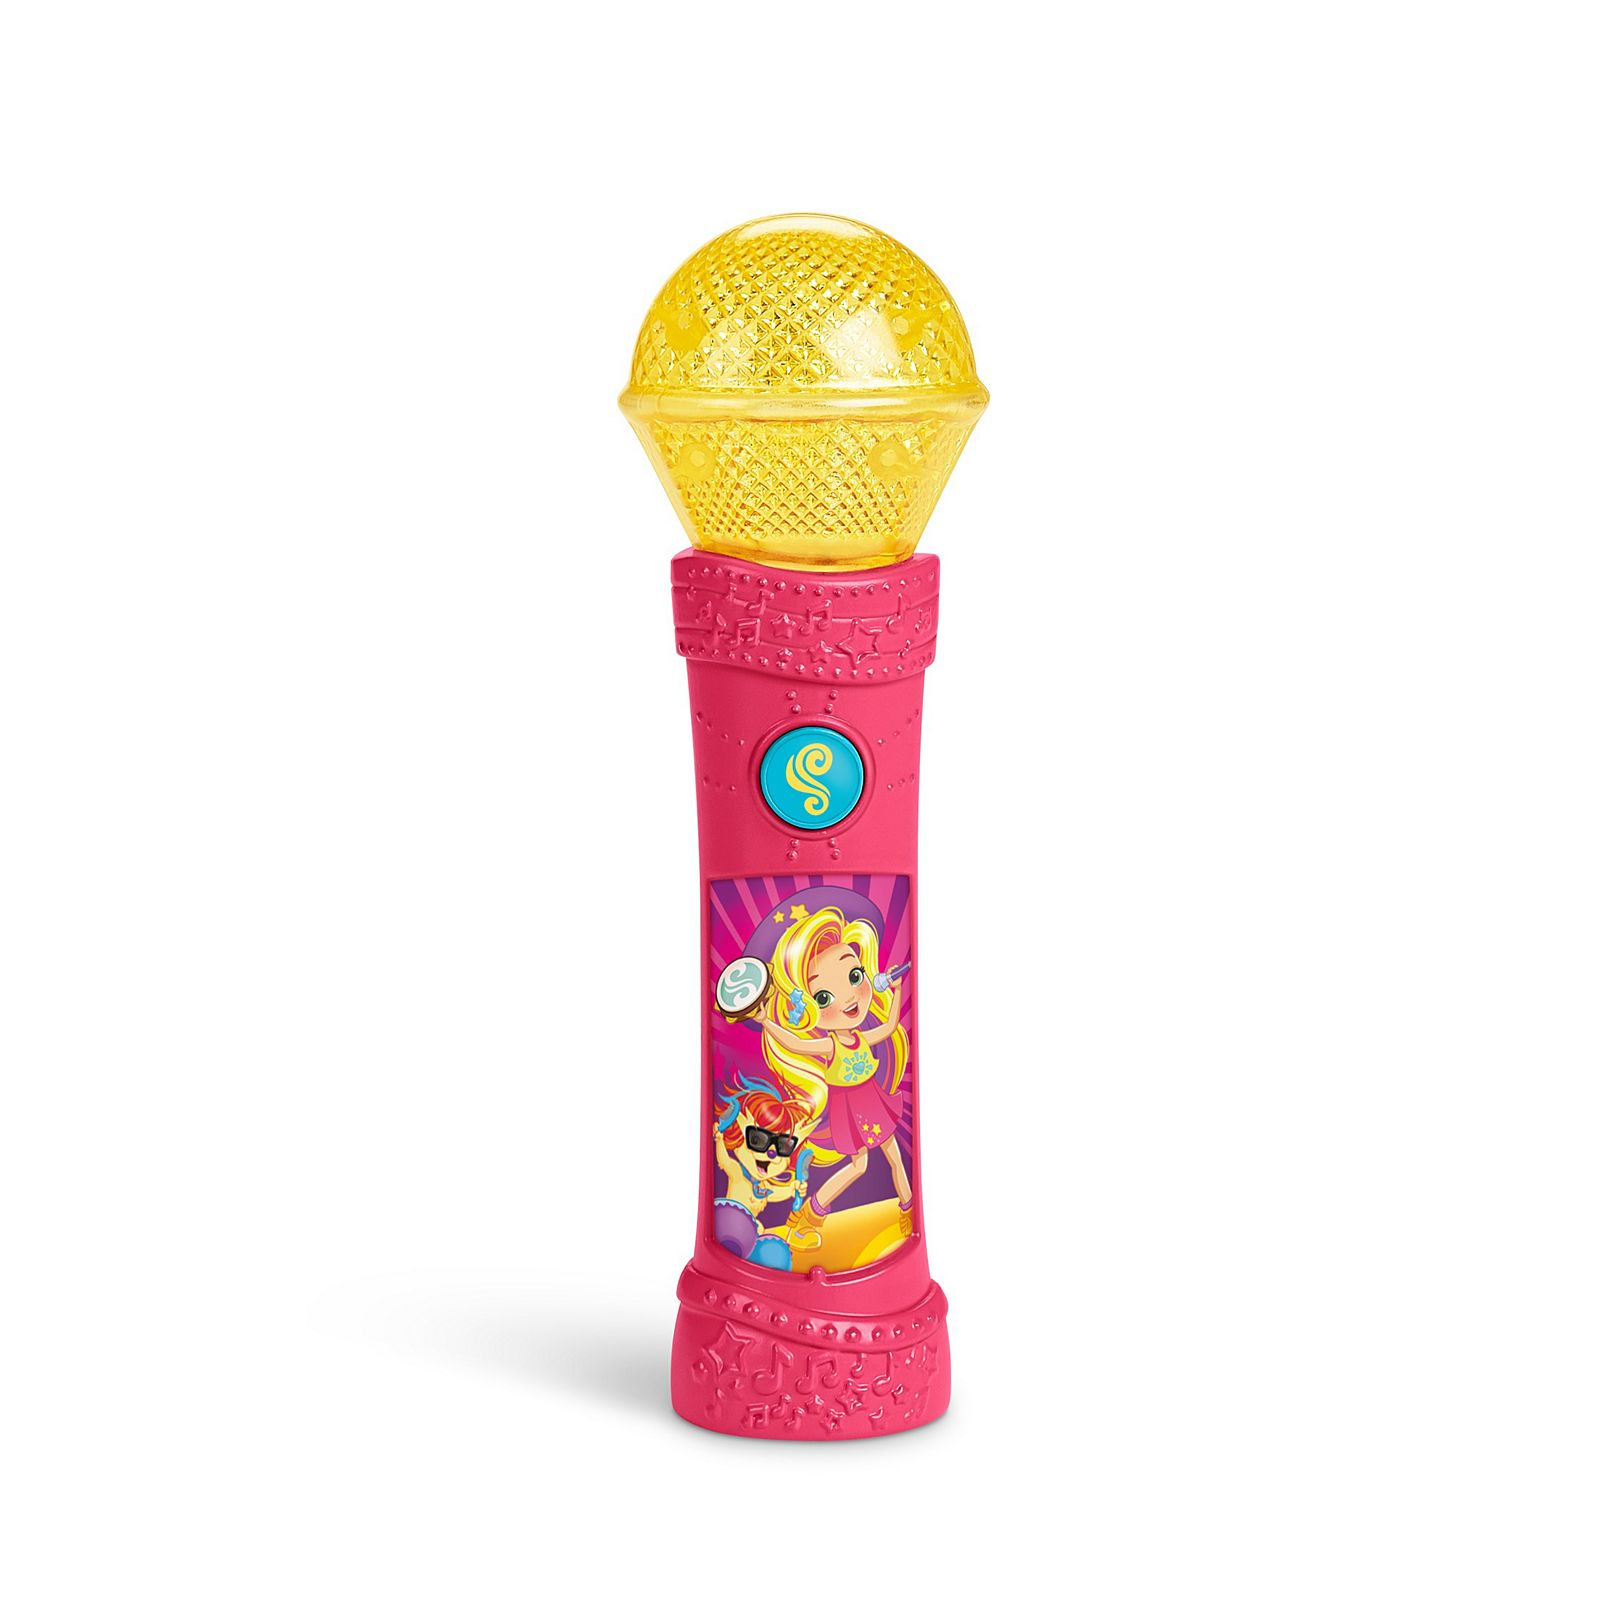 Nickelodeon Sunny Day™ Sunny's Sing-along Microphone